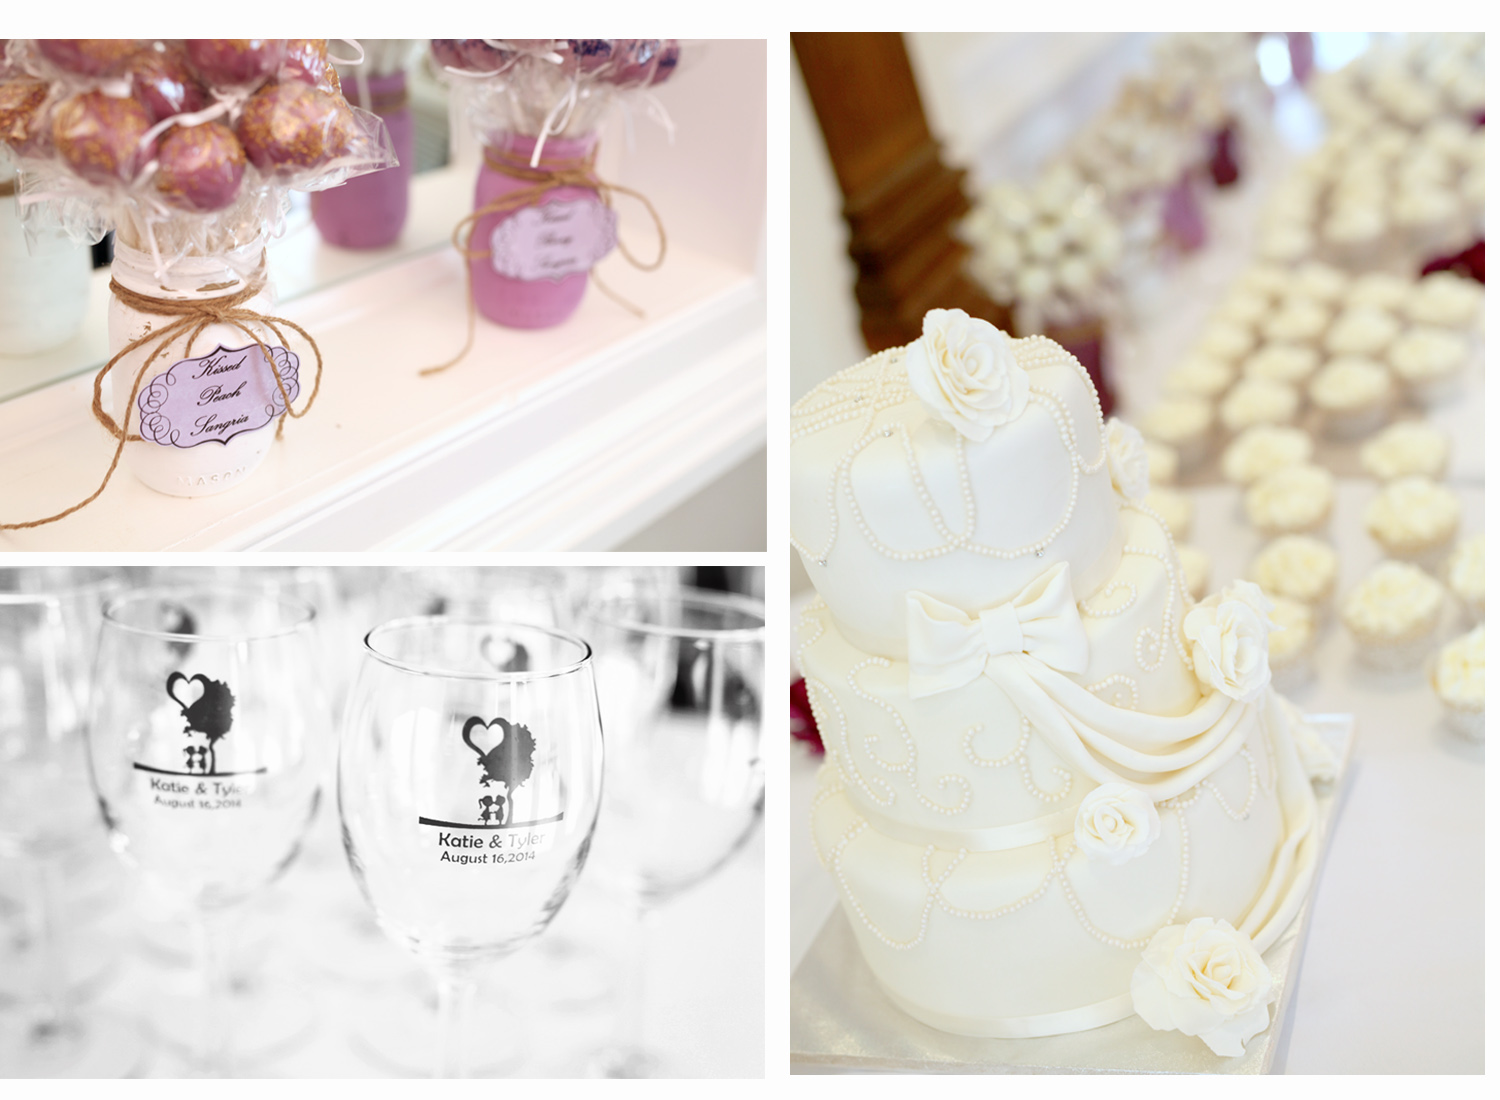 Here are a few of Katie's decor details.